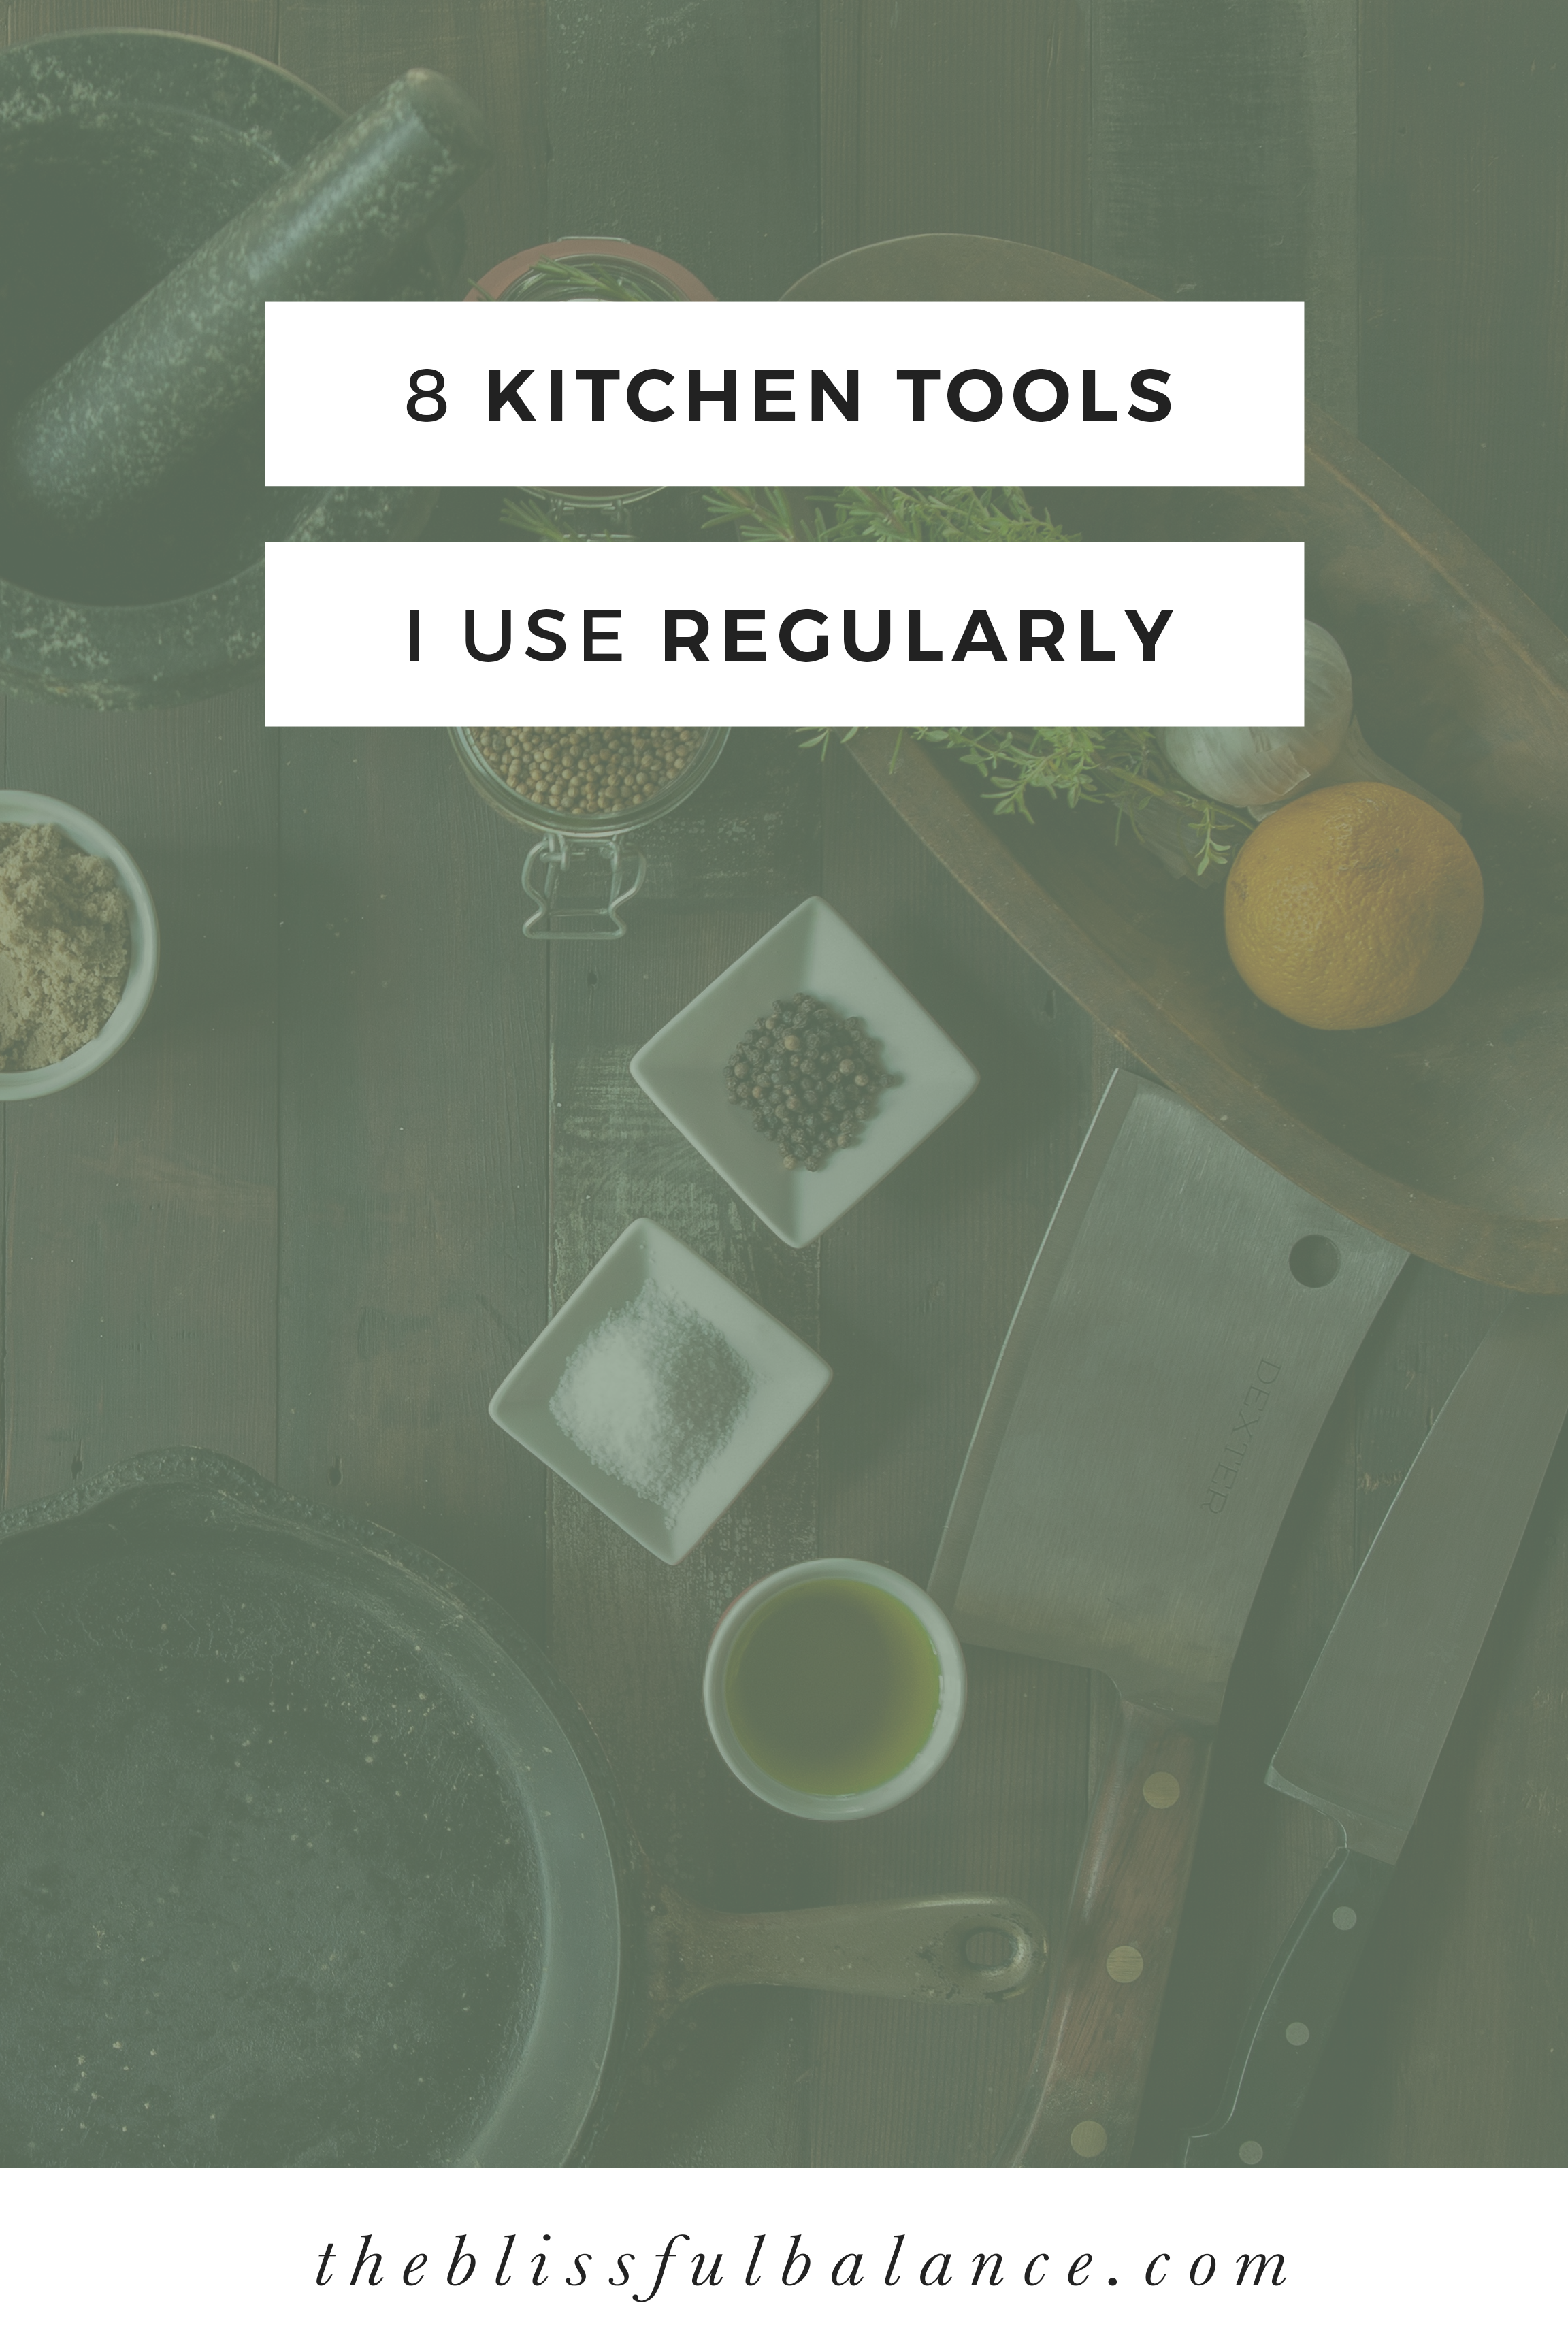 8 Kitchen Tools I Use Regularly